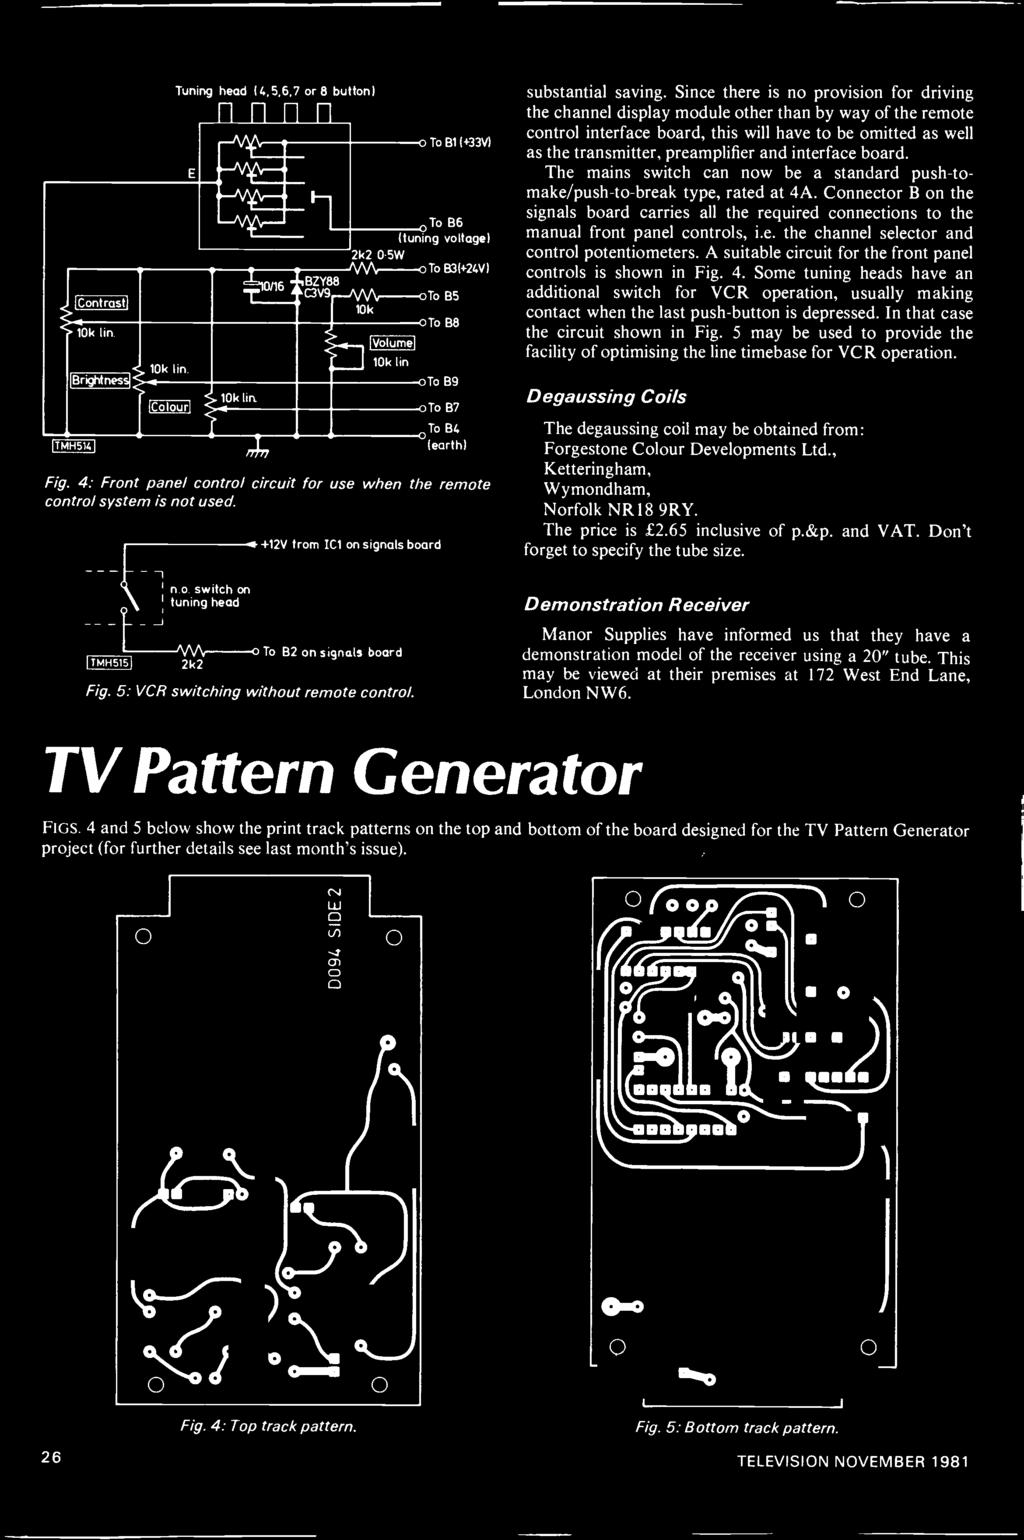 Tv Receiver Design The Pdf 7w Audio Amplifier Based Tba810 Circuit Diagram A Suitable For Front Panel Controls Is Shown In Fig 4 Some